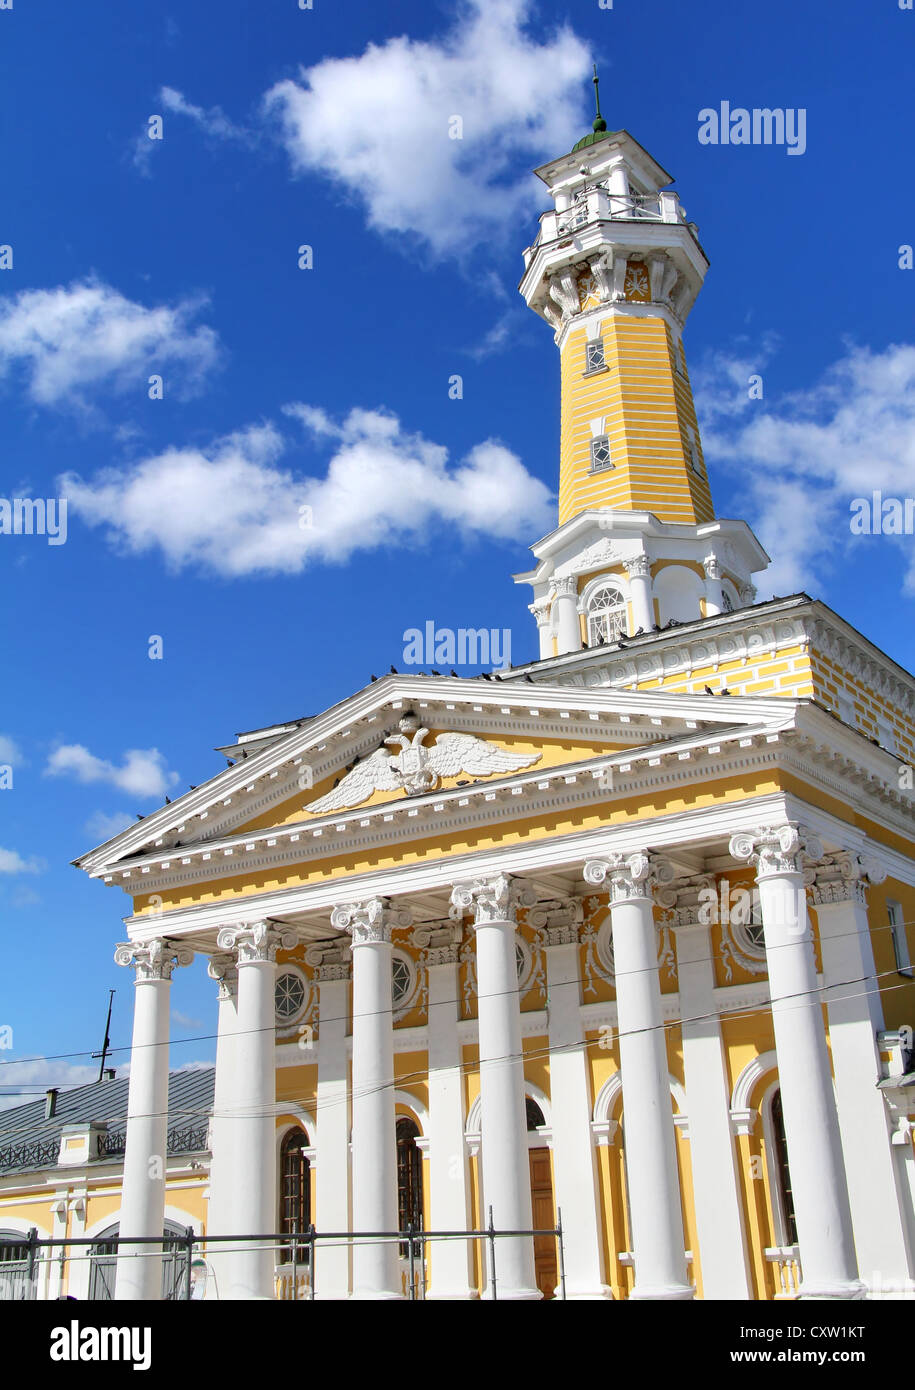 Fire lookout tower in Kostroma, Russia - Stock Image